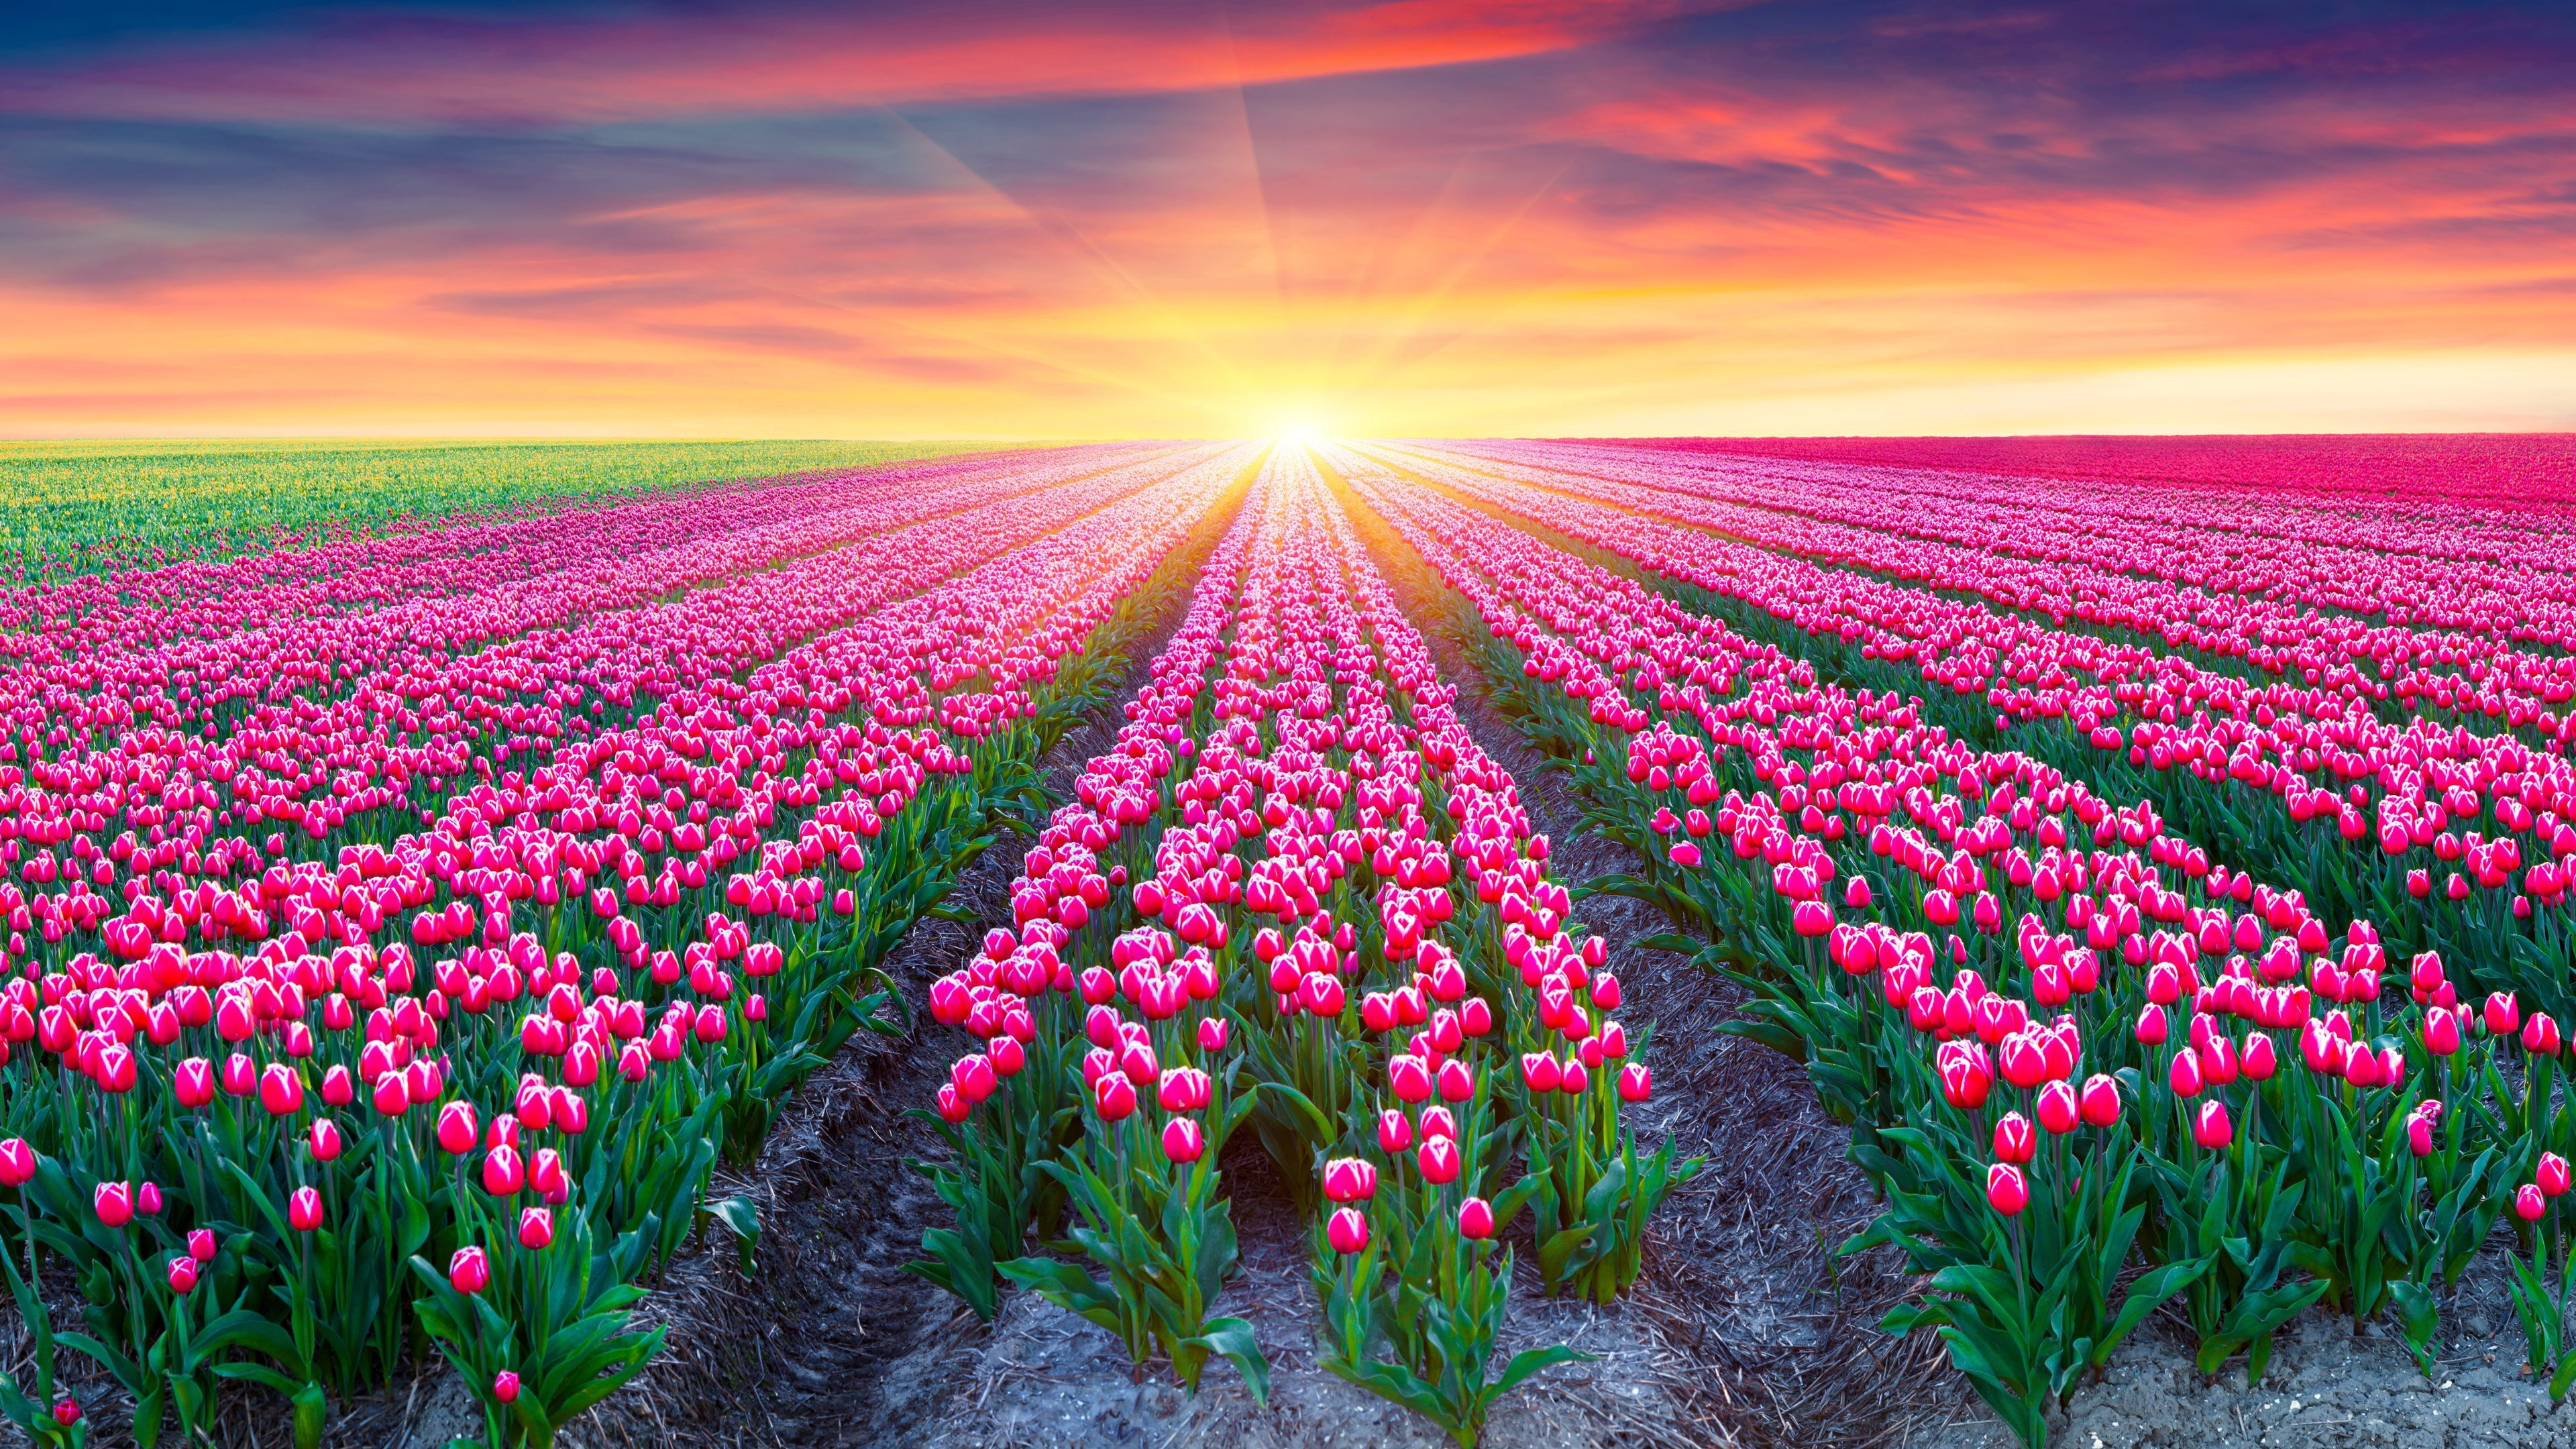 Flower fields wallpapers images photos pictures backgrounds for Foto hd desktop